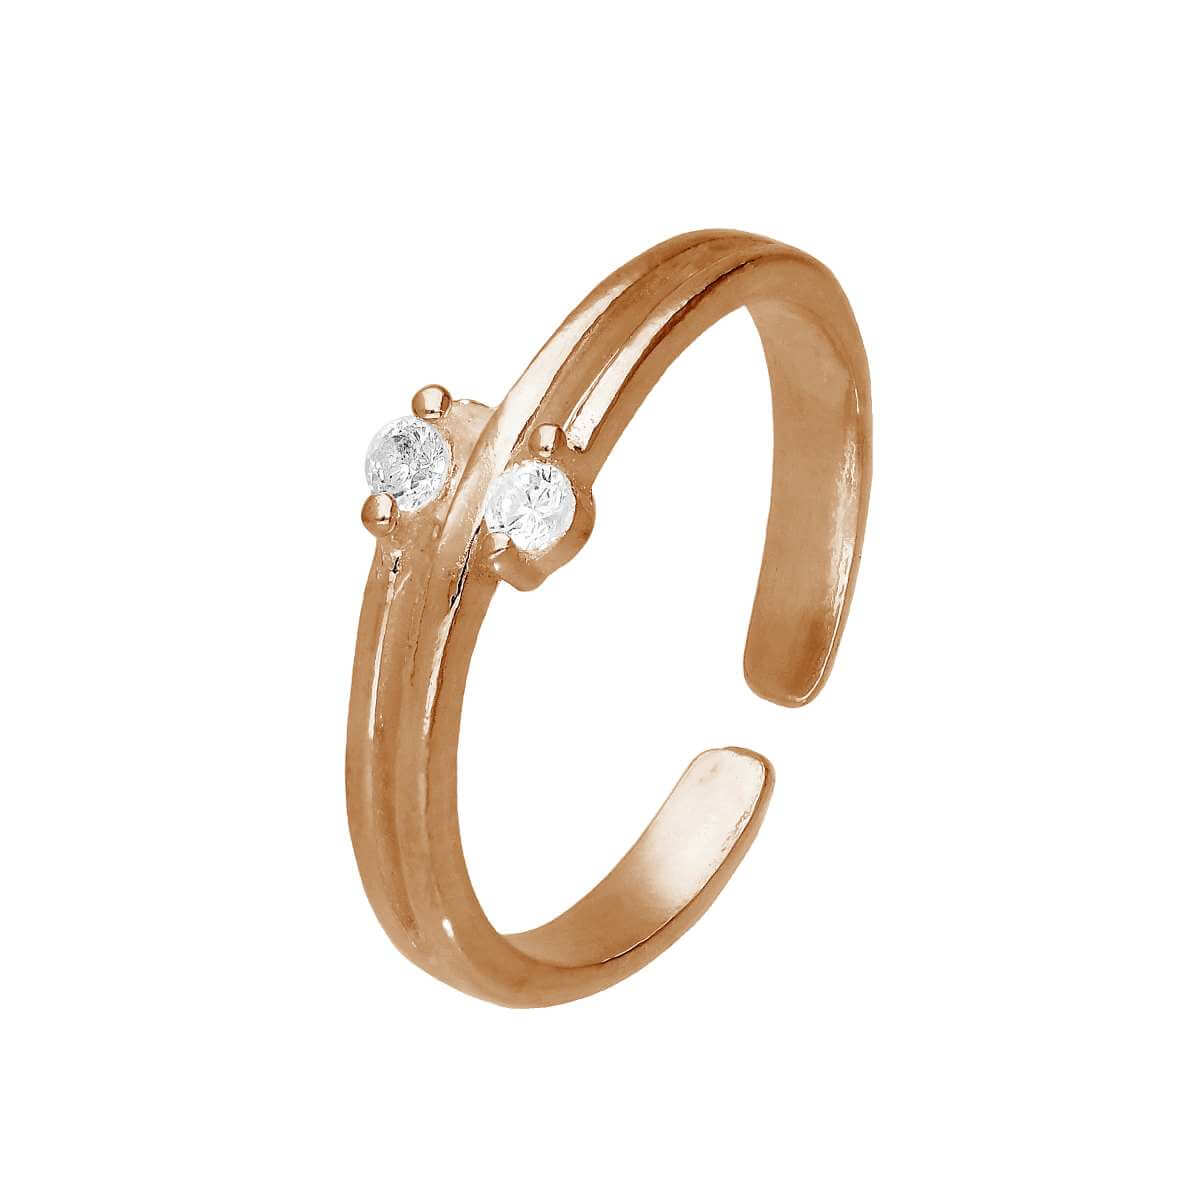 Rose Gold Plated Sterling Silver & CZ Adjustable Toe Ring